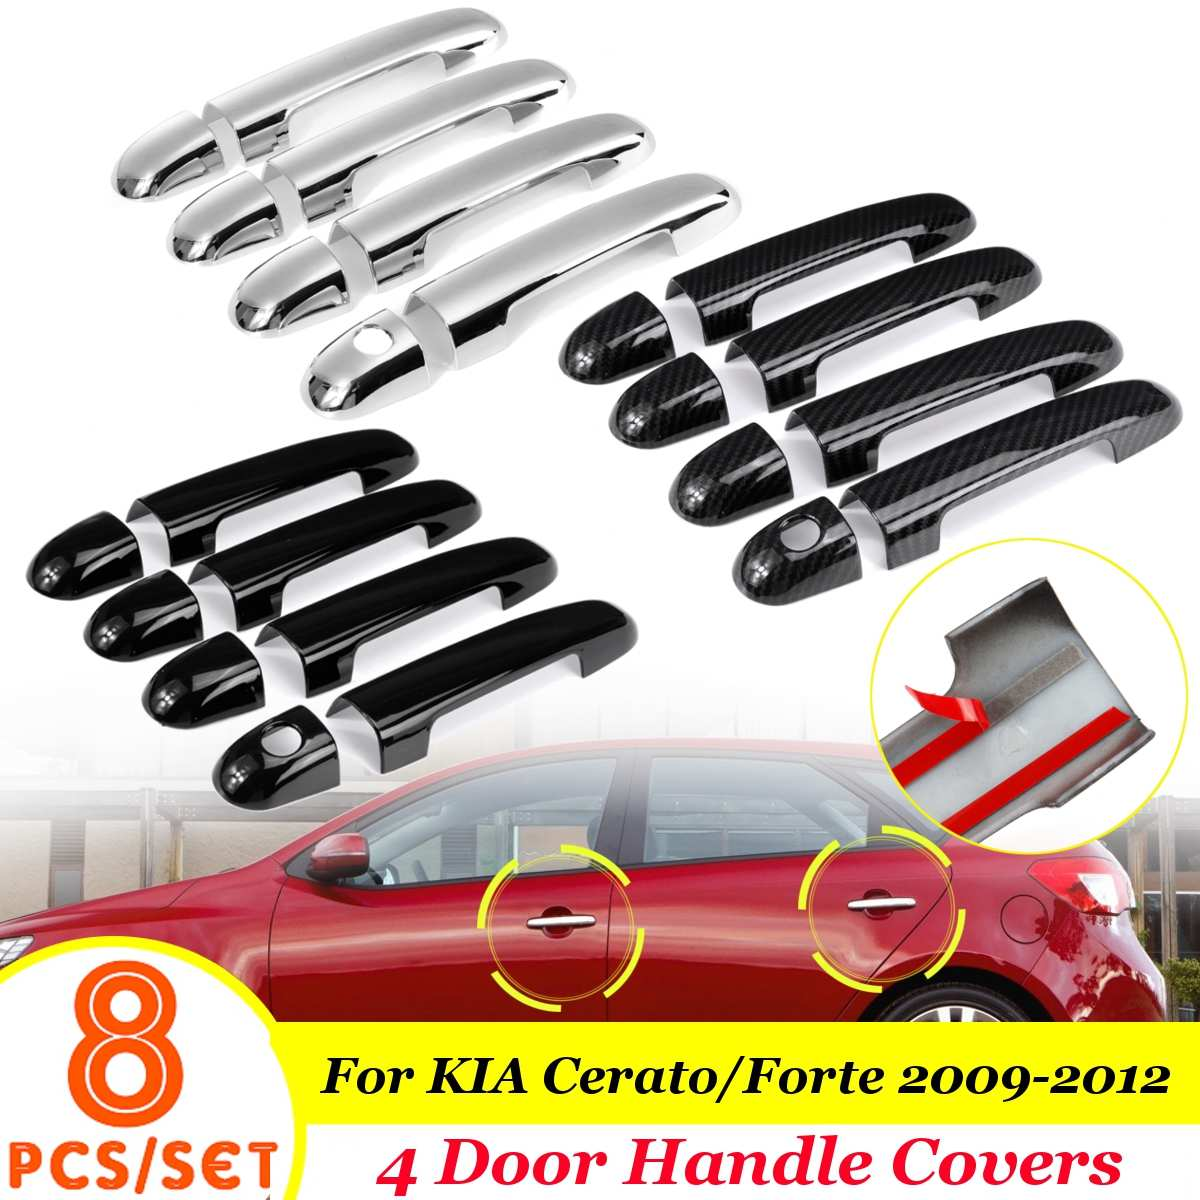 Chrome / Glossy Black Car Door Handle Covers Trim Sticker Auto Exterior Parts For Kia Cerato Forte 2009 2010 2011 2012